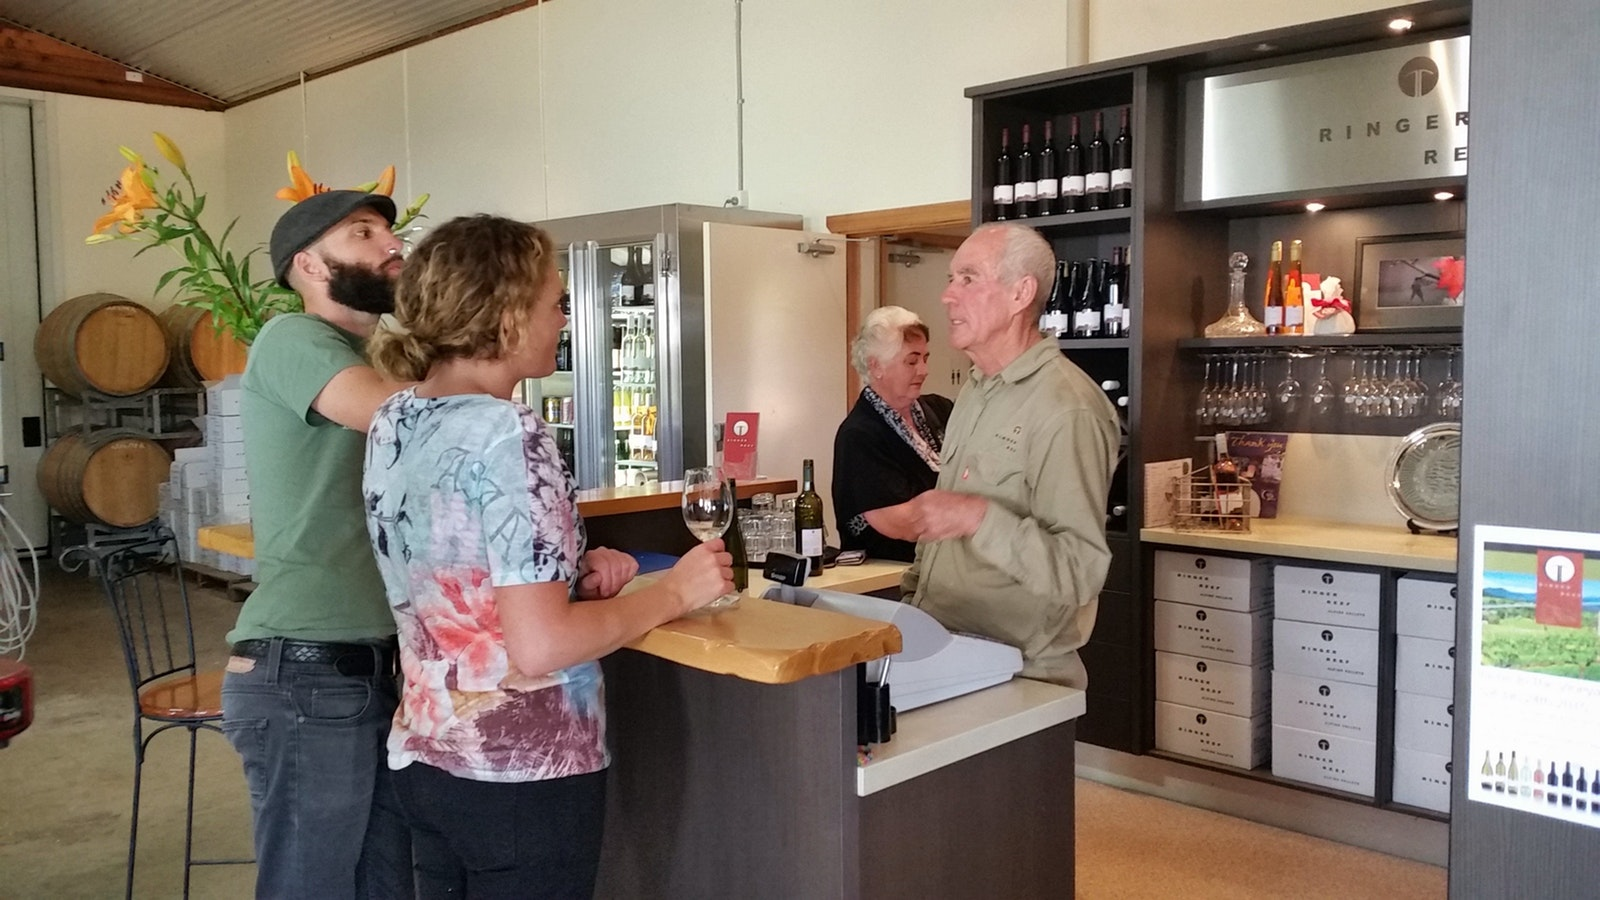 Winemaker talking wines at Ringer Reef Winery